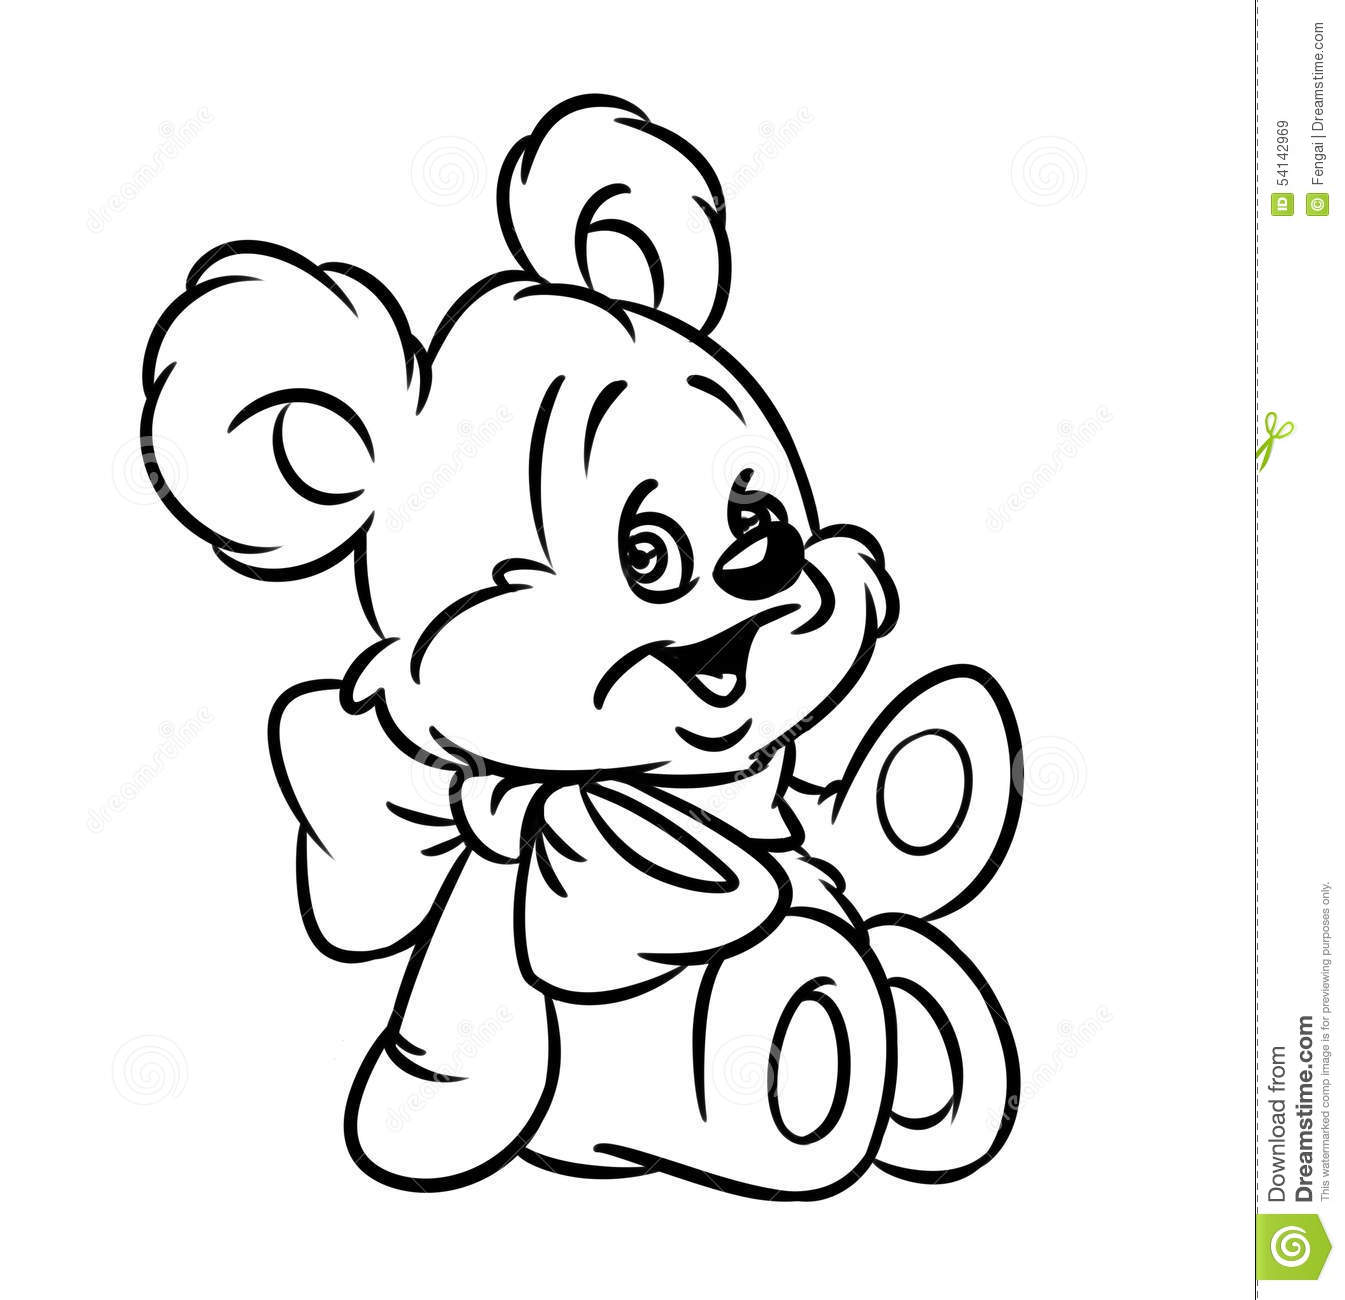 cartoon teddy bear coloring pages - photo#22